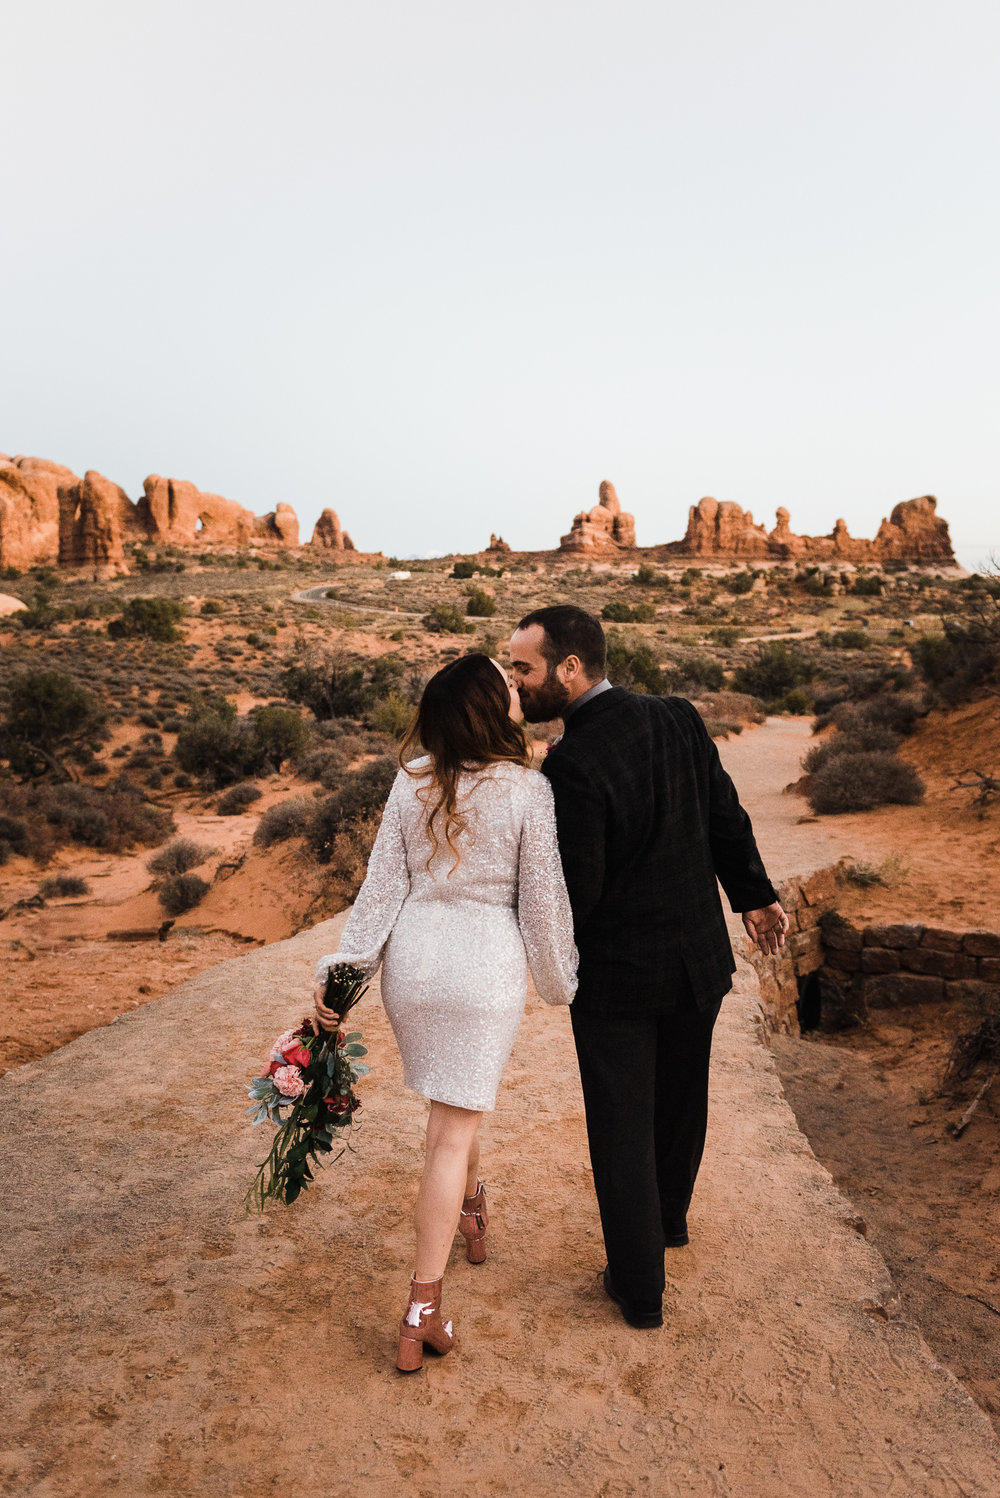 Bethany & Wade | Elopement in Moab